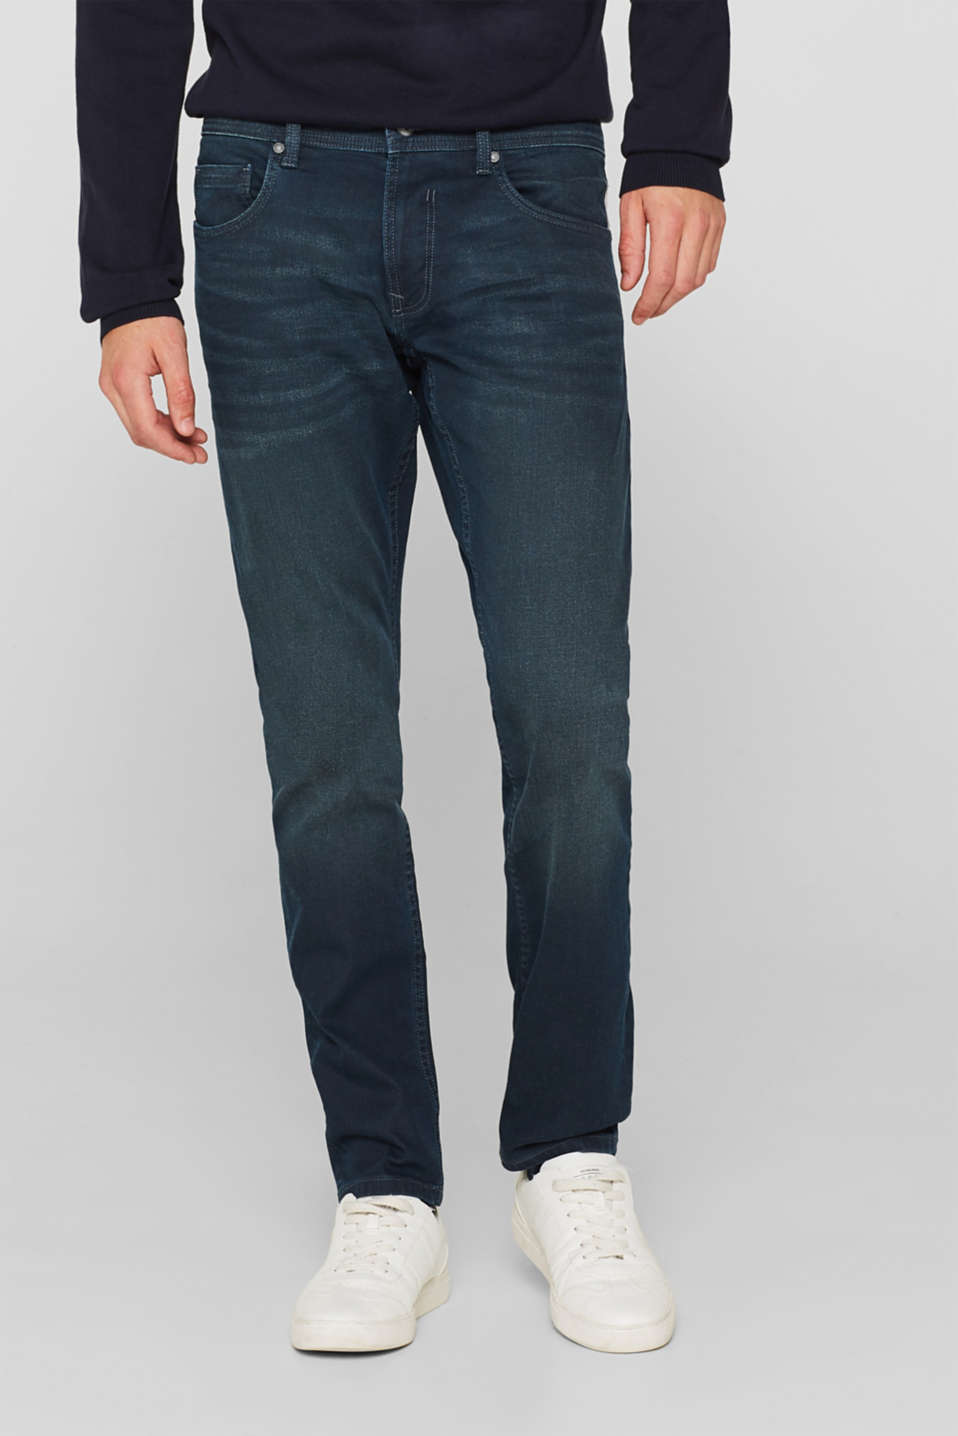 edc - Stretchjeans met coating